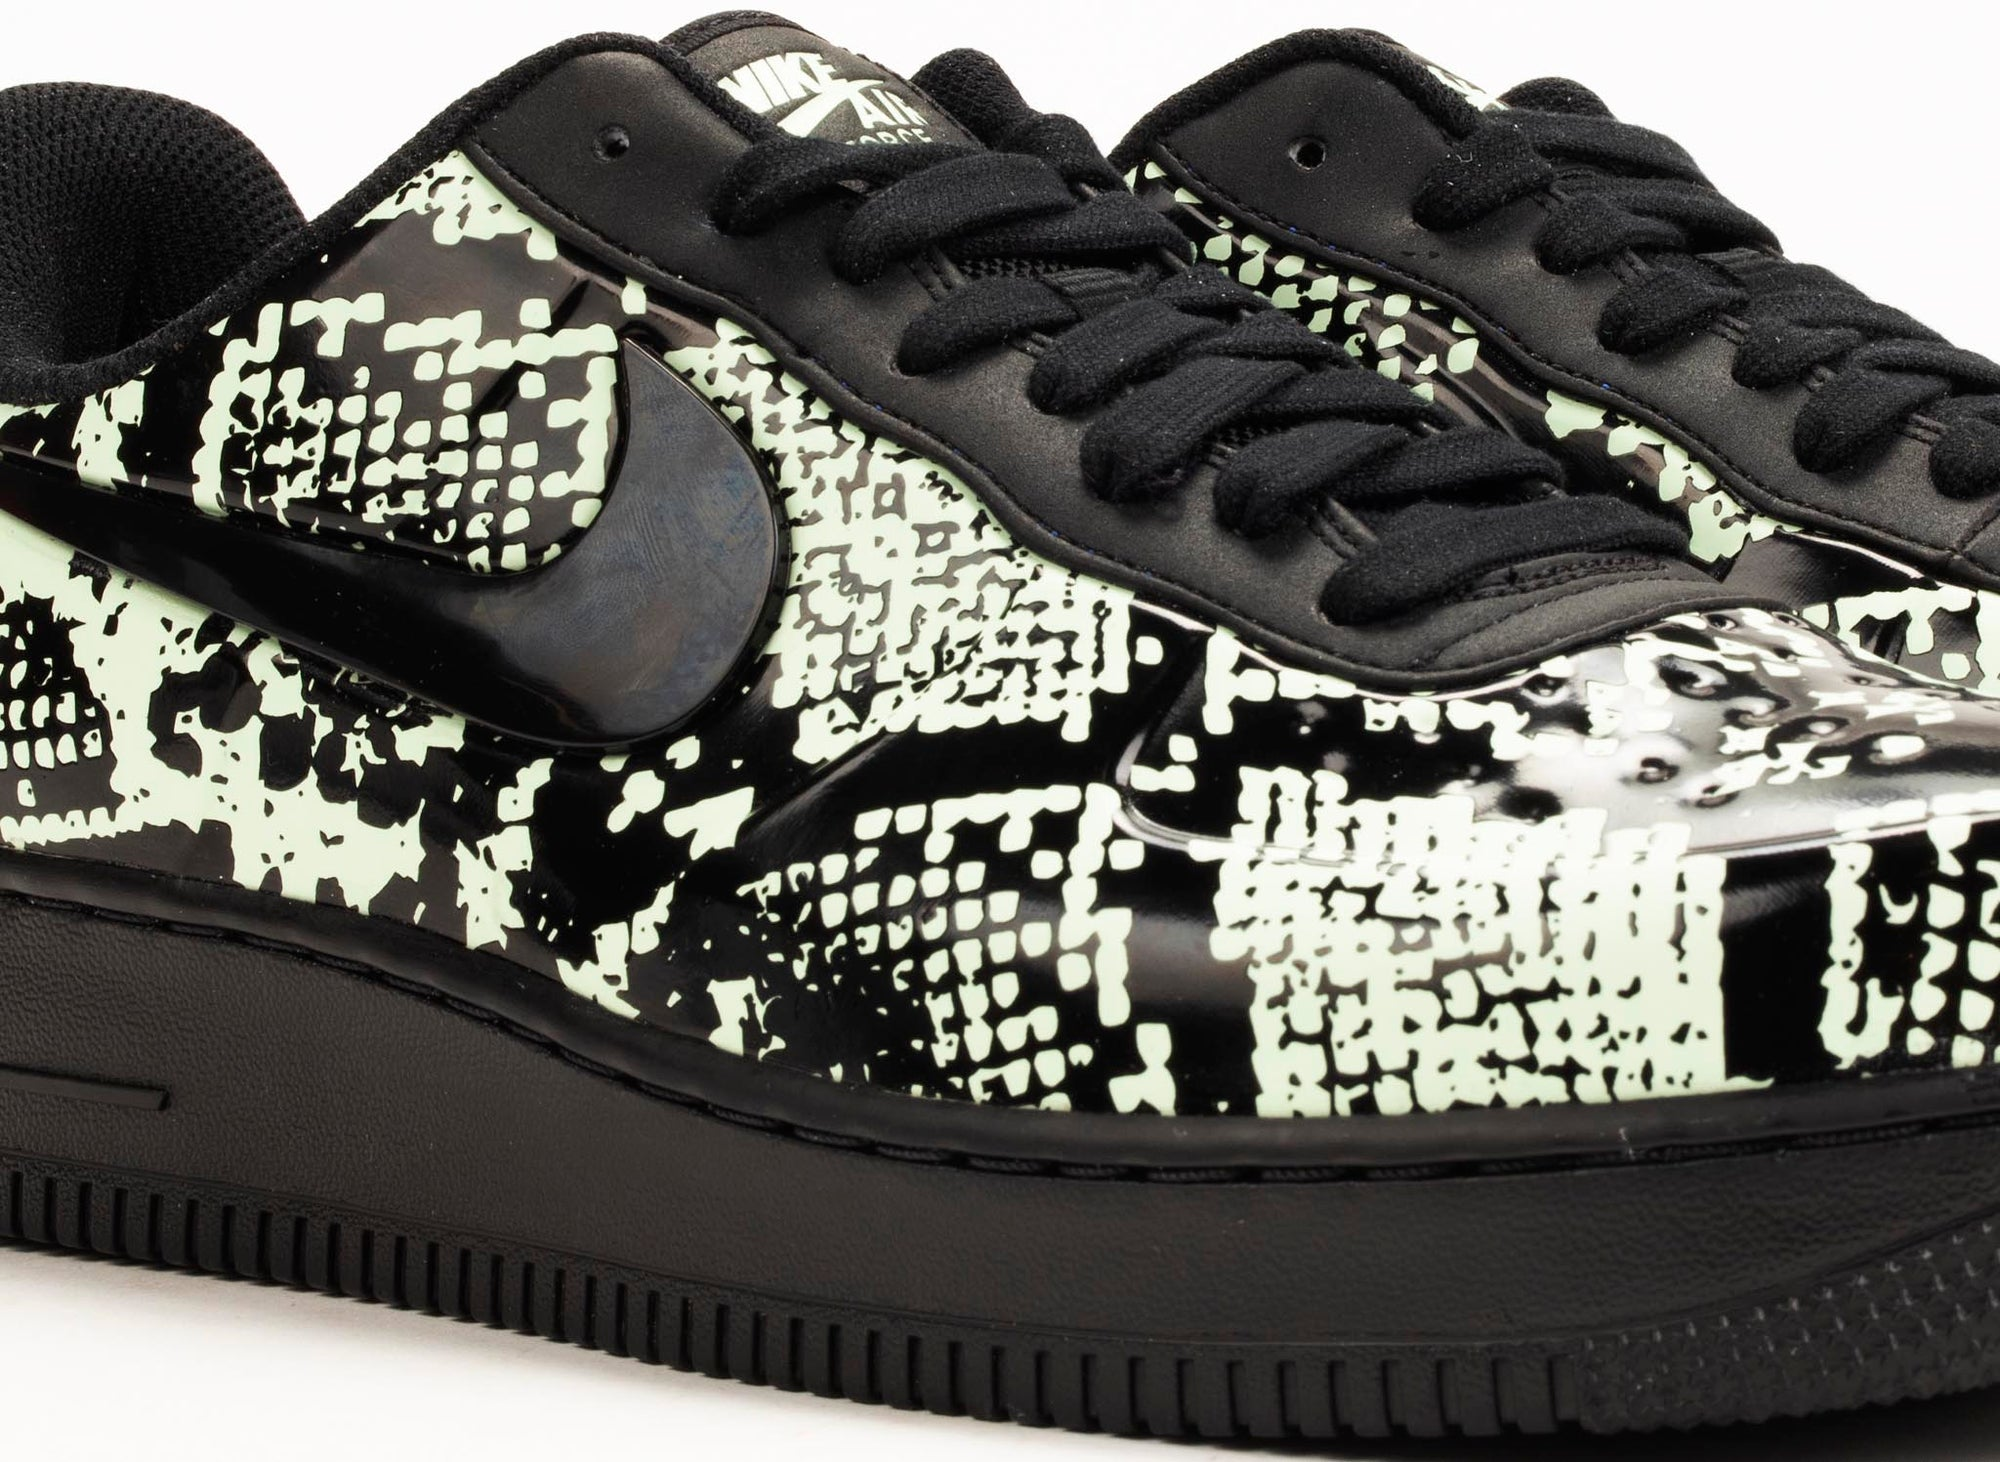 the best attitude 3c25c f1687 Nike Air Force 1 Foamposite Pro Cup 'Glow Snakeskin'